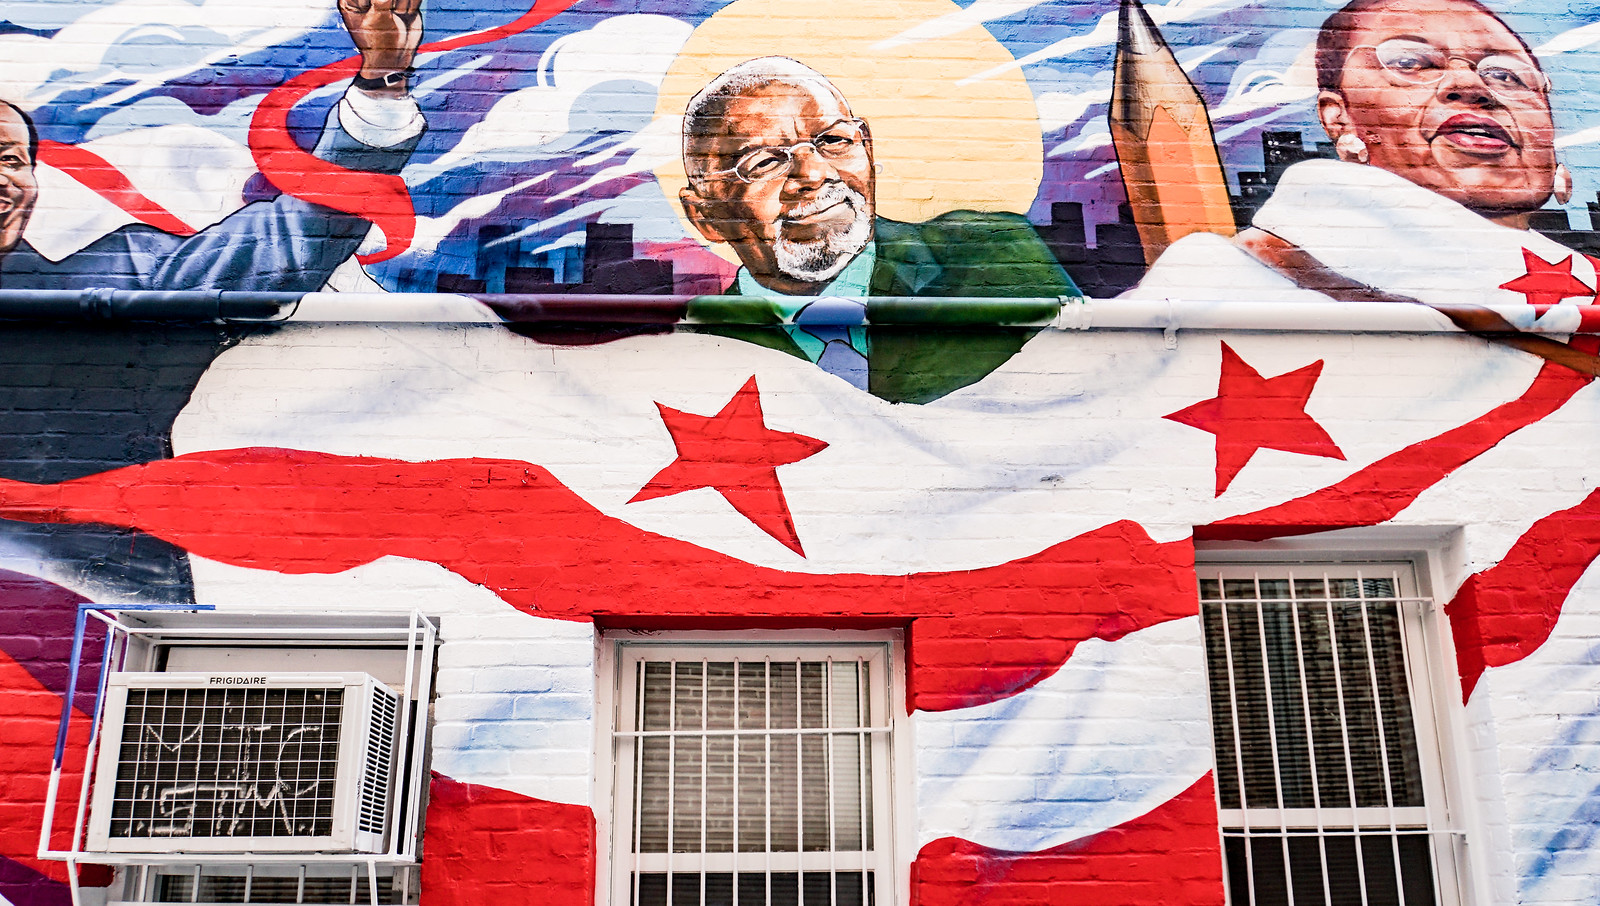 2017.06.26 Ben's Chili Bowl Mural, Washington, DC USA 6865